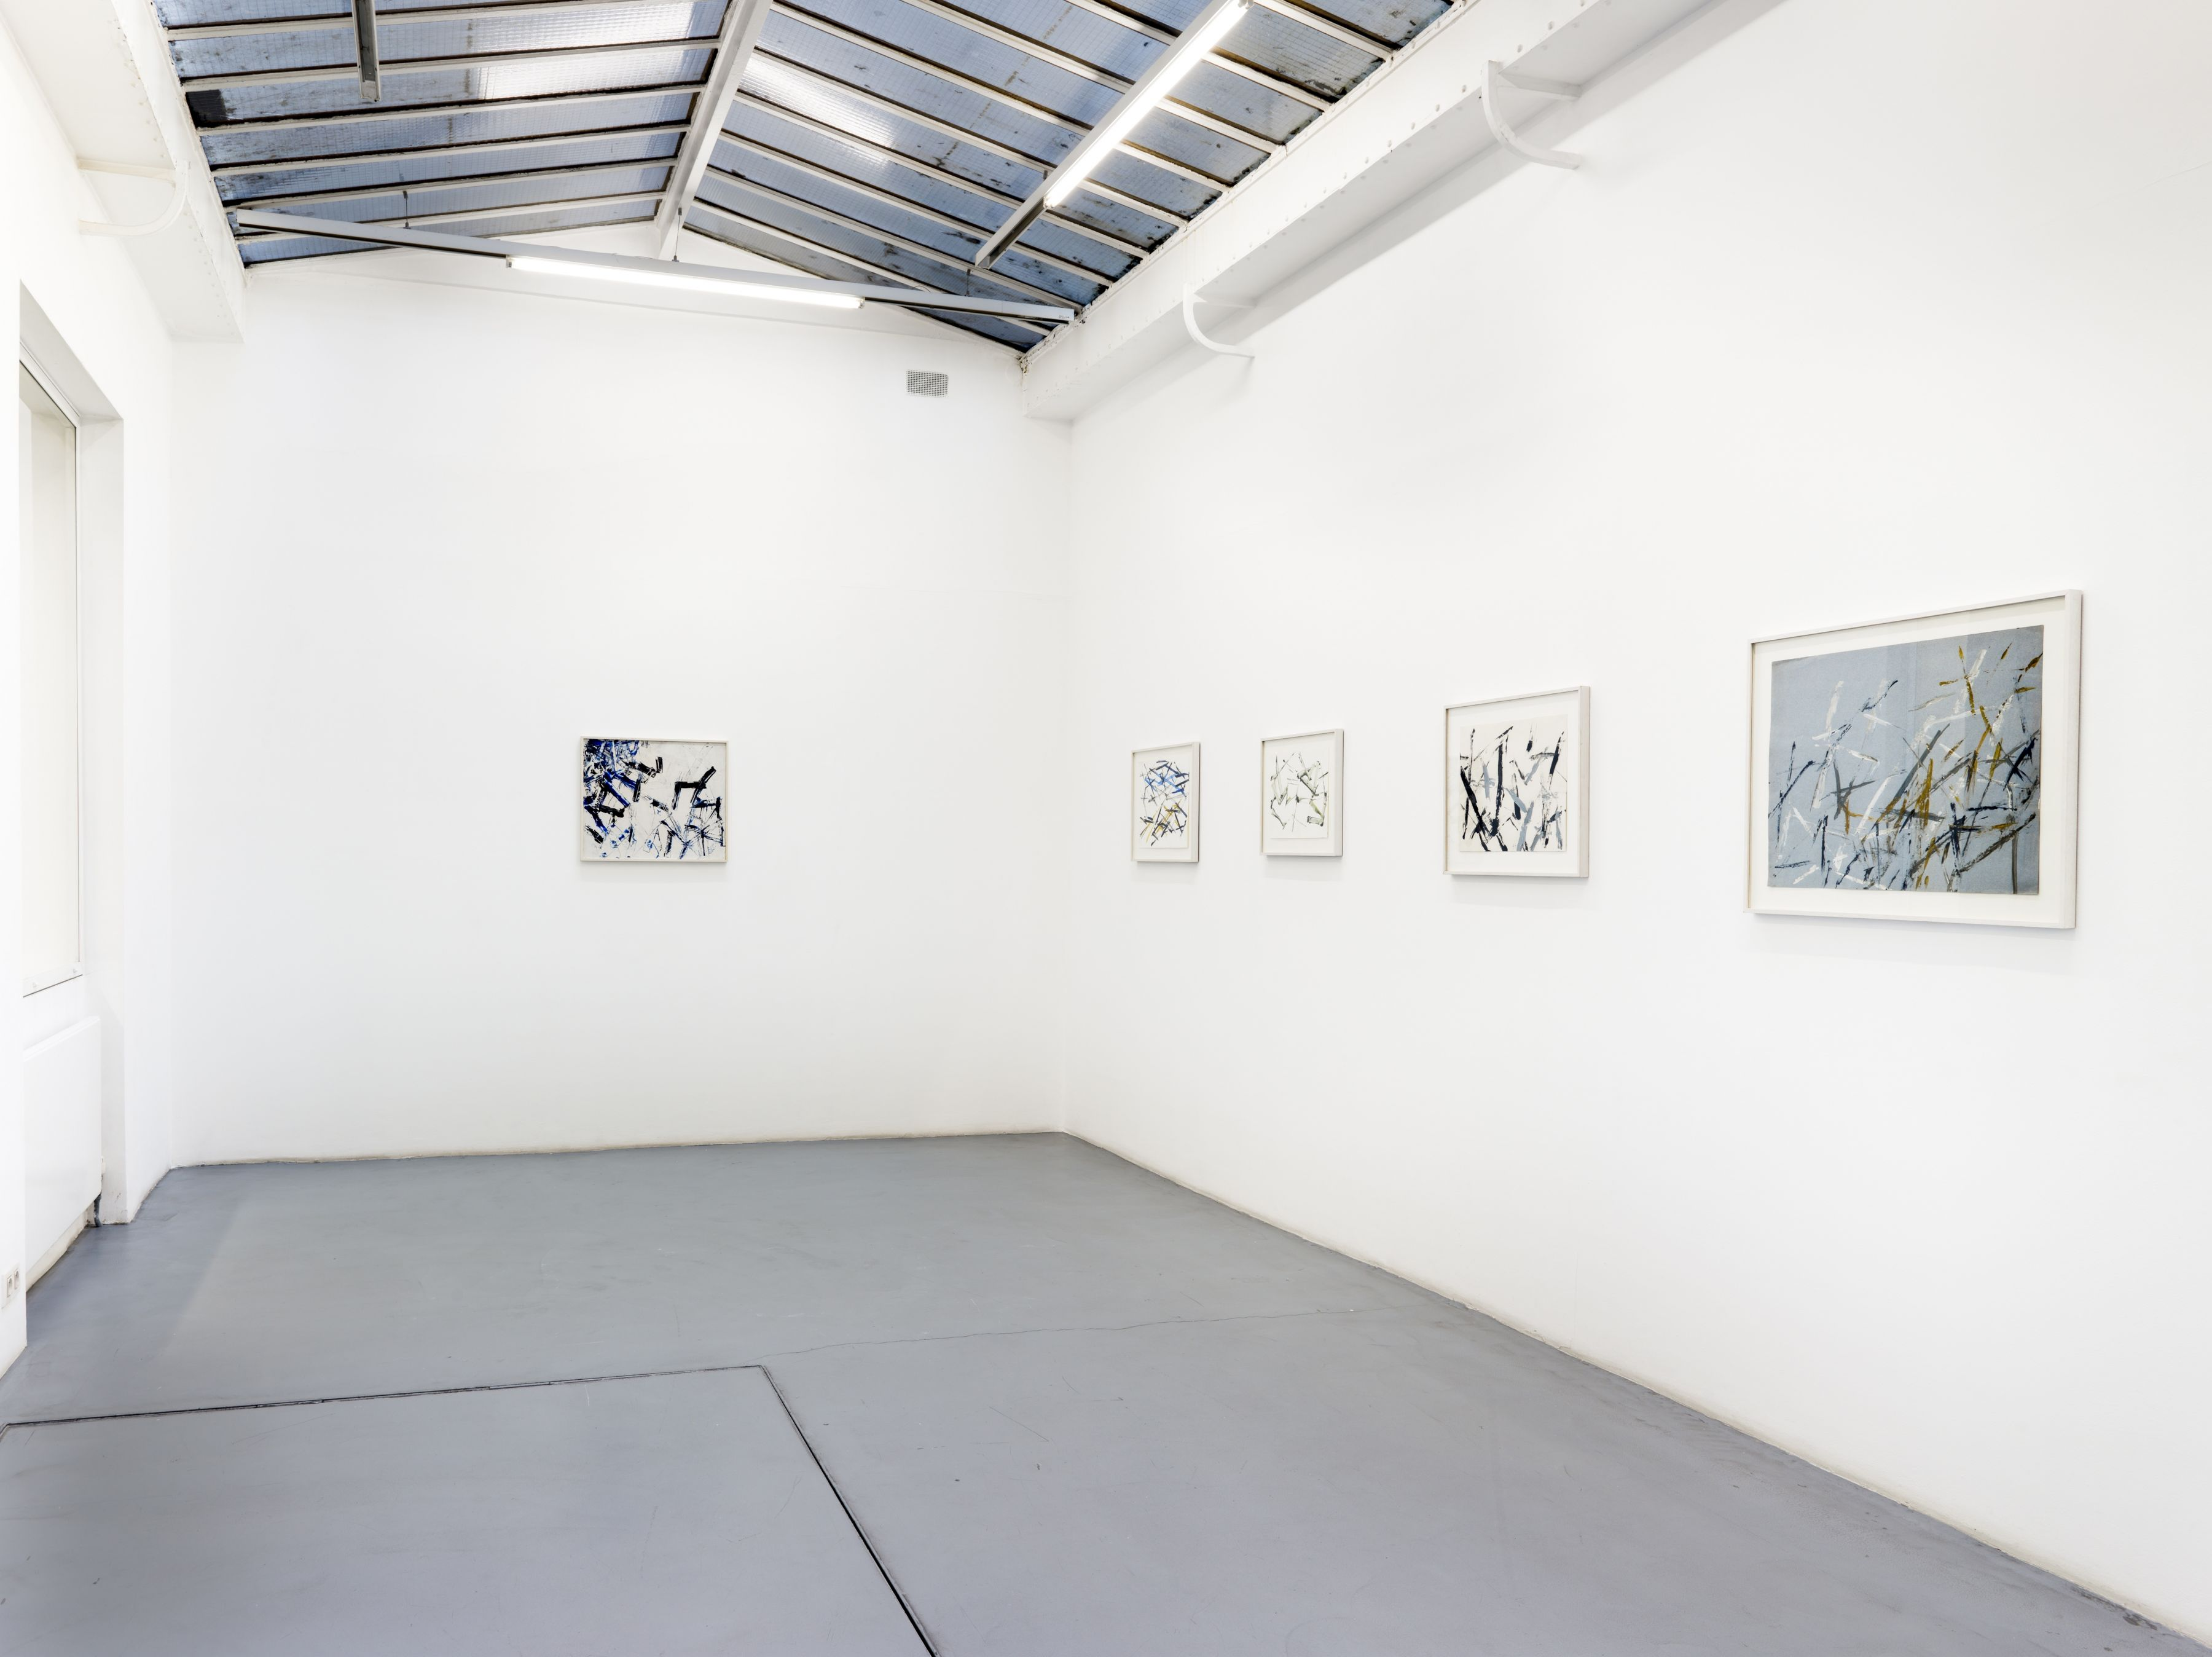 Charlotte Posenenske: Le même, autrement - The same, but different – installation view 4